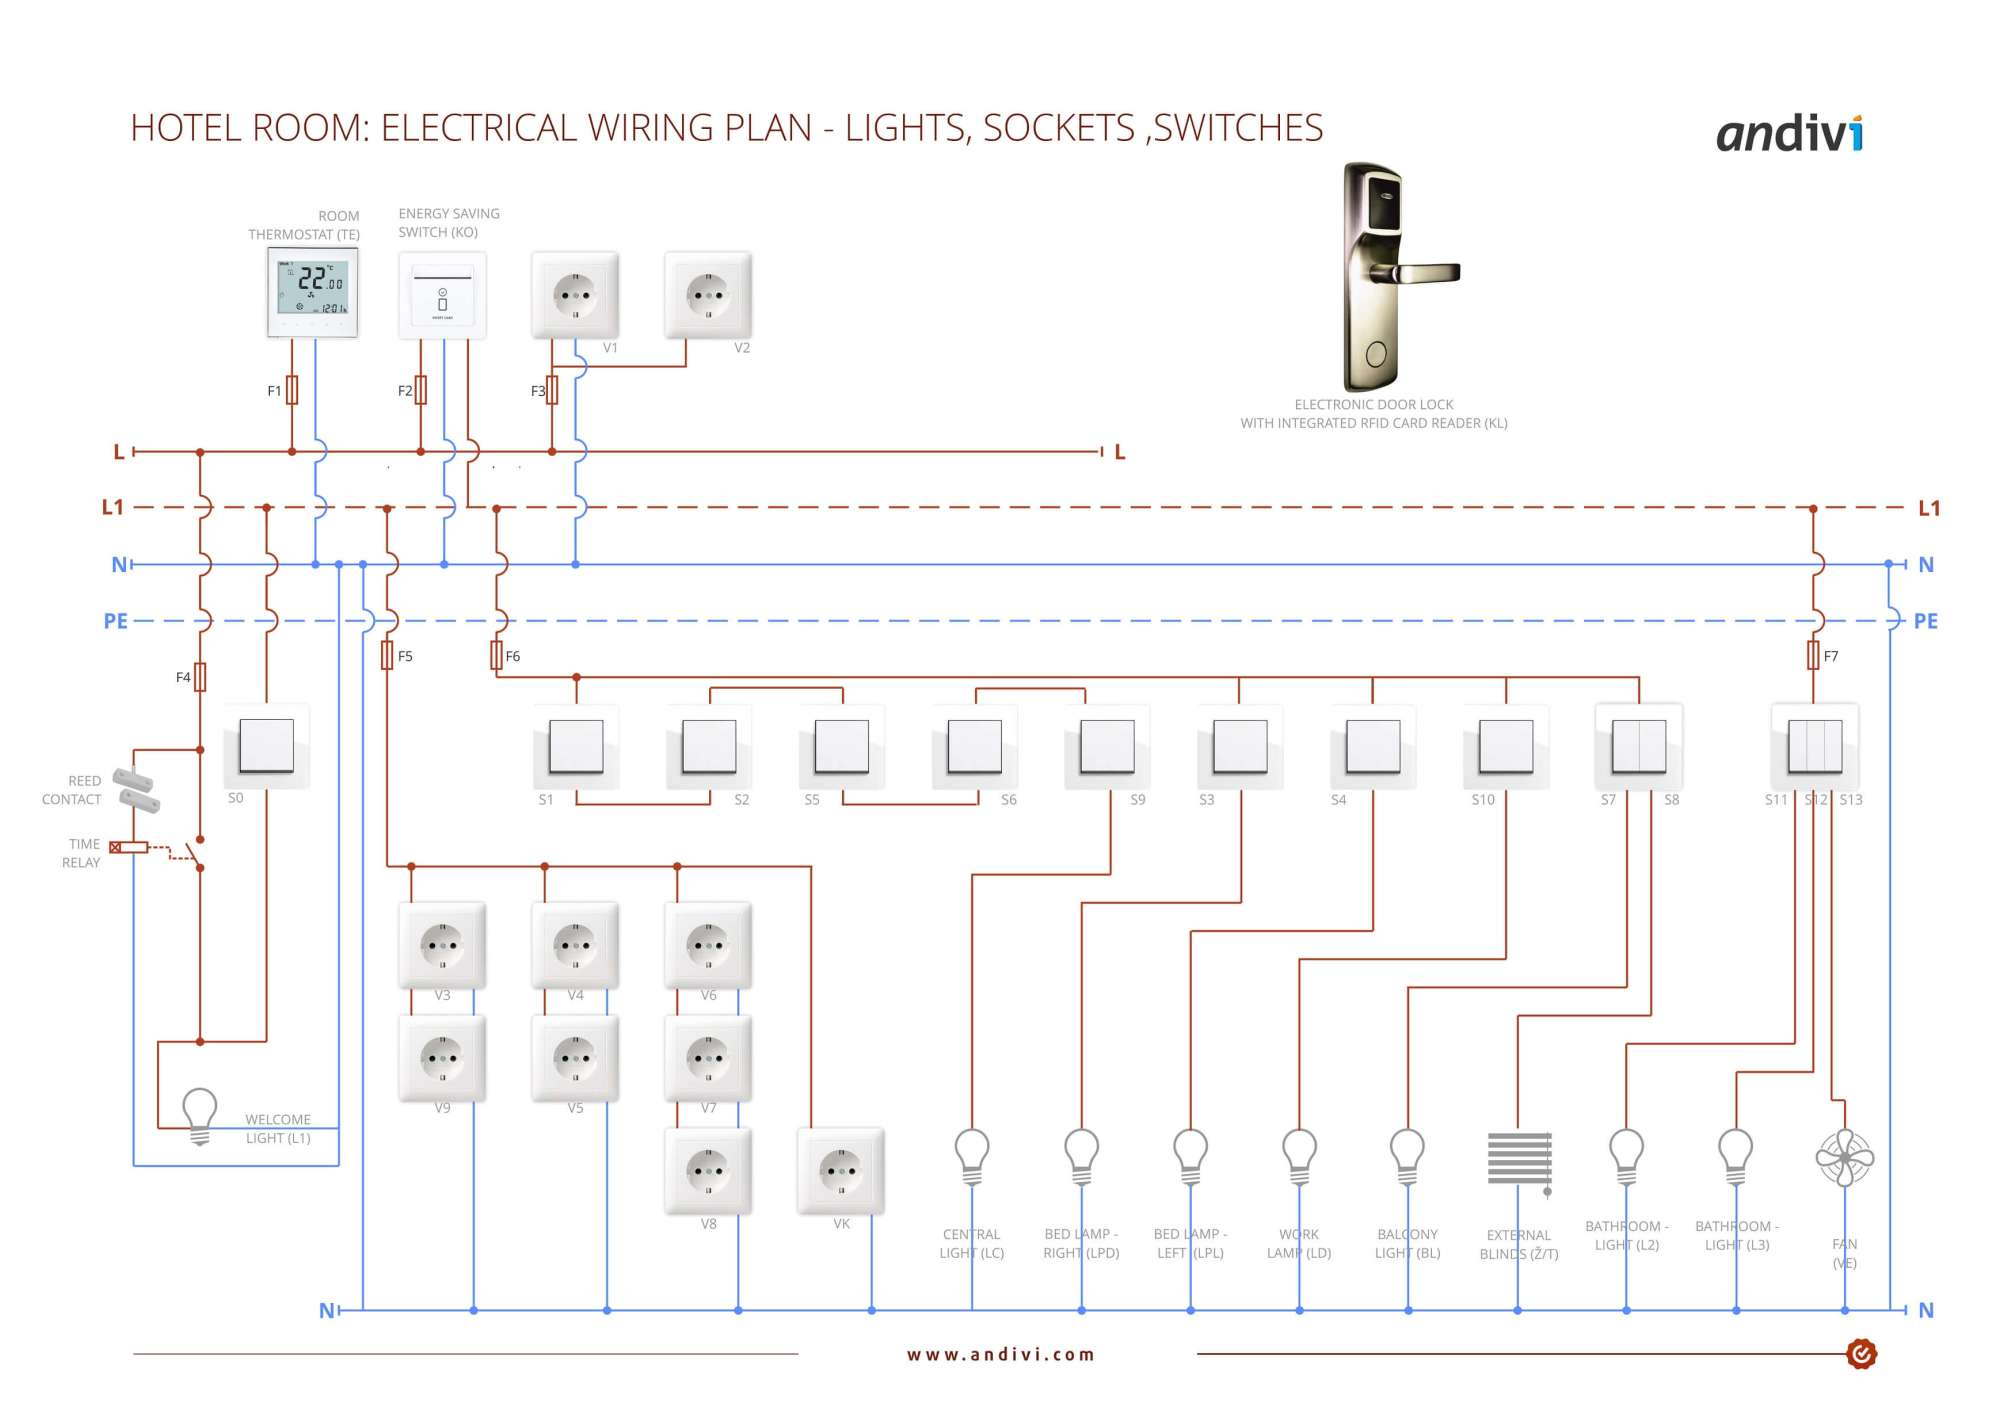 hight resolution of electrical installations electrical layout plan for a typical hotel wiring electrical outlets and lights